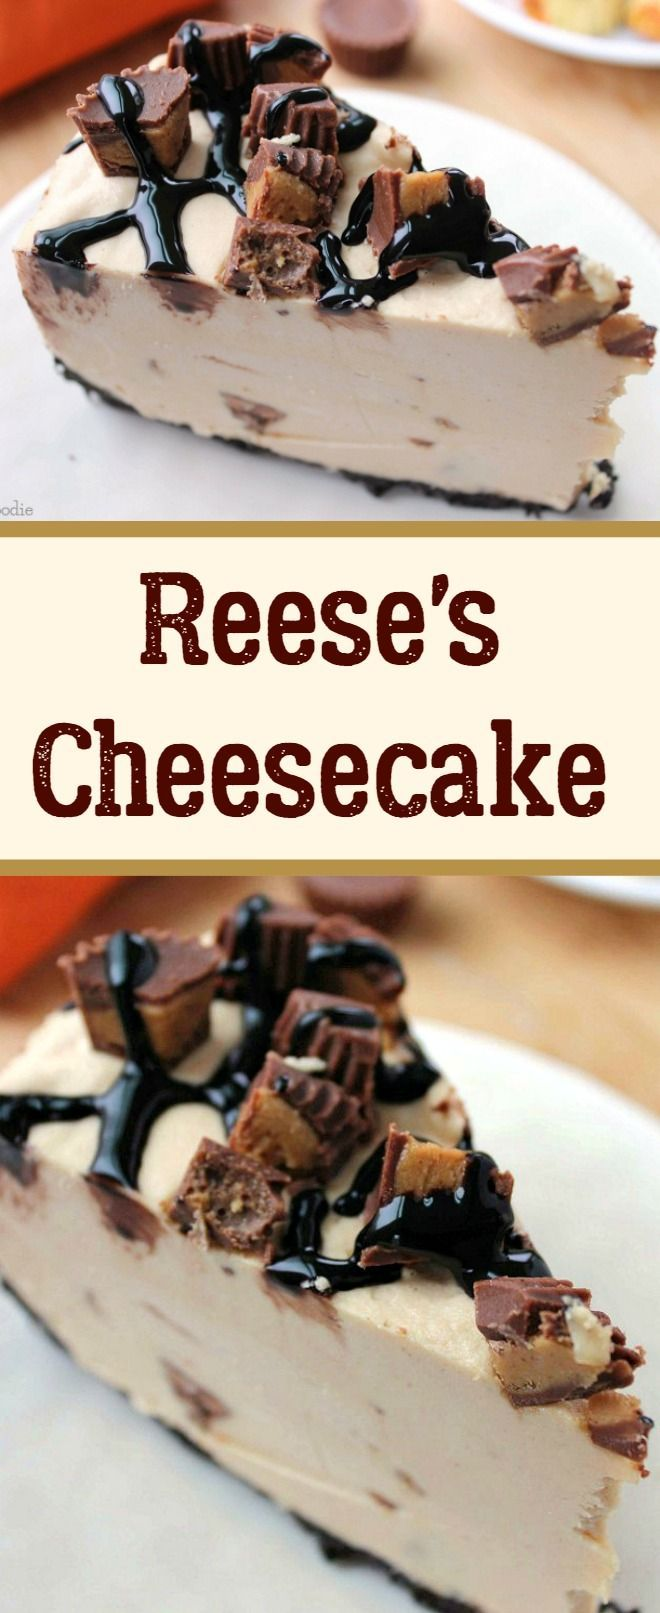 Reese's Peanut Butter No-Bake Cheesecake